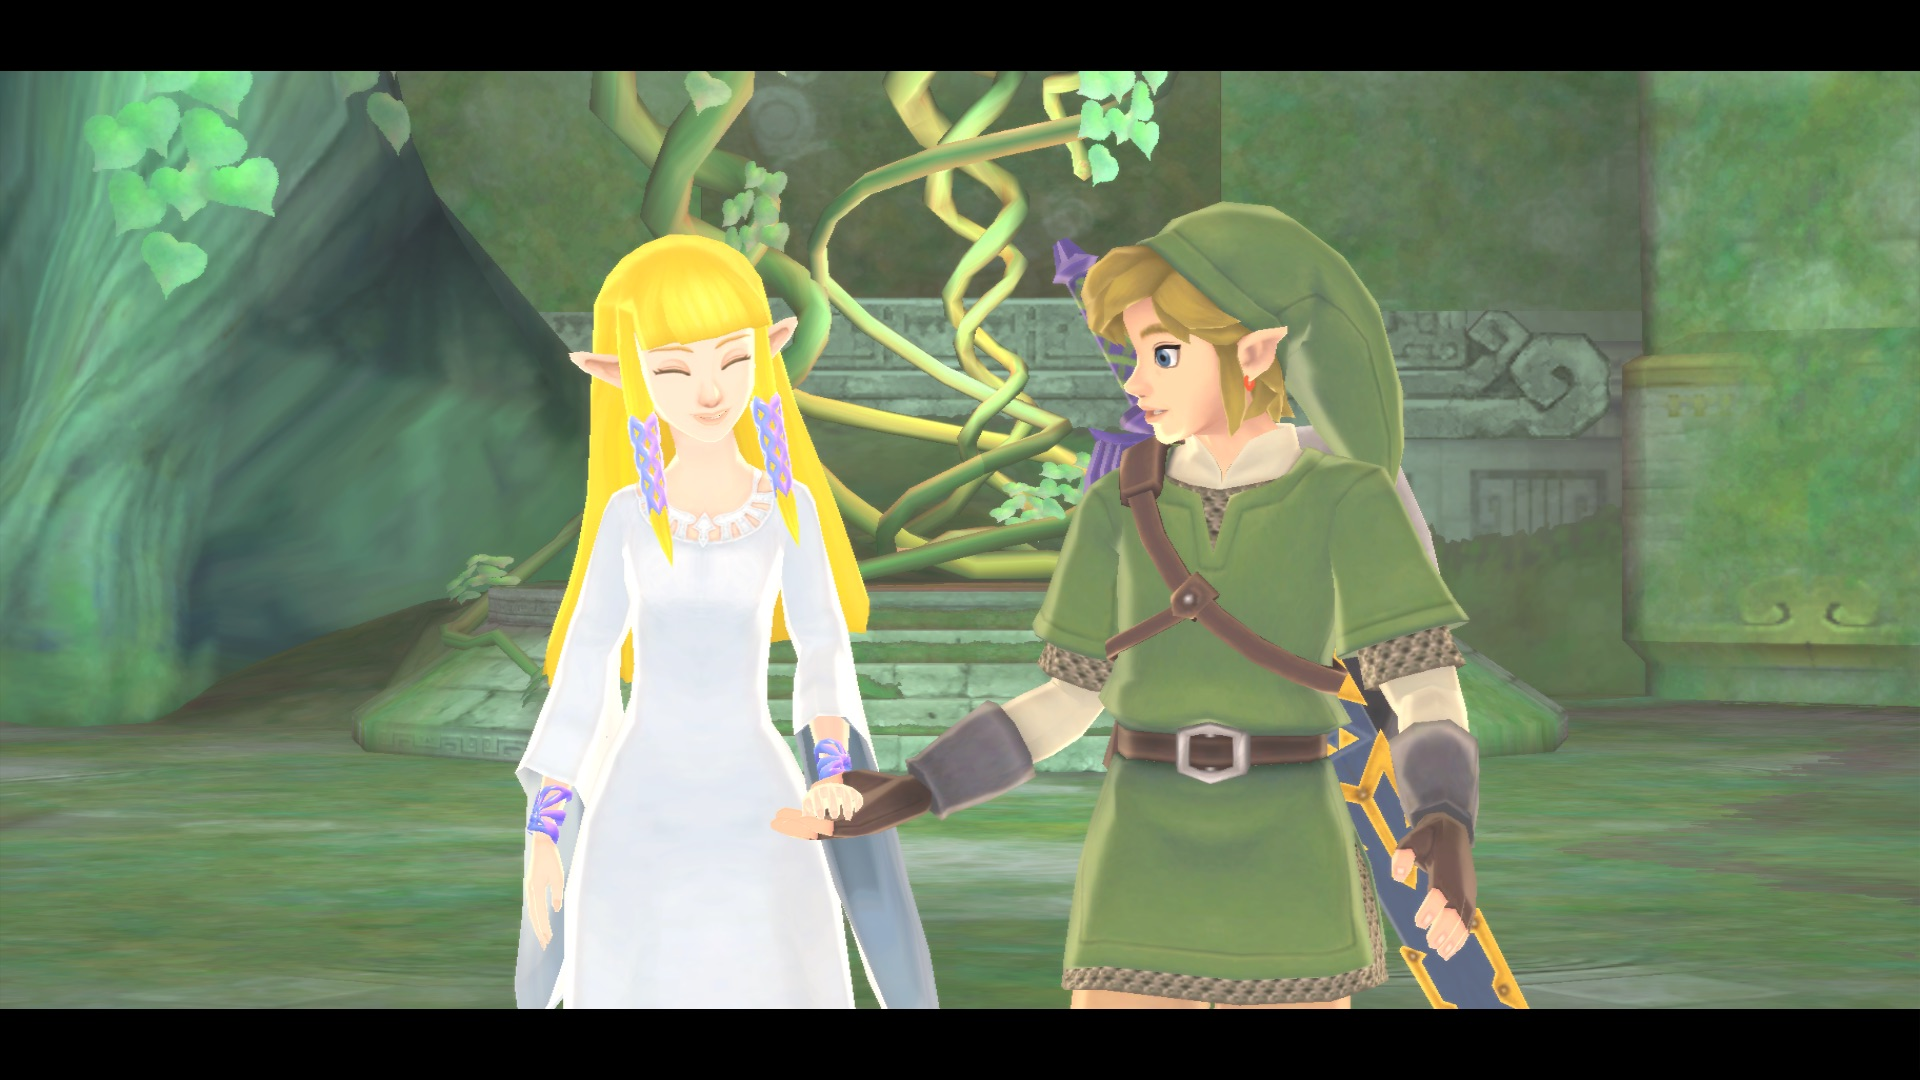 Skyward Sword is the Best Zelda Game